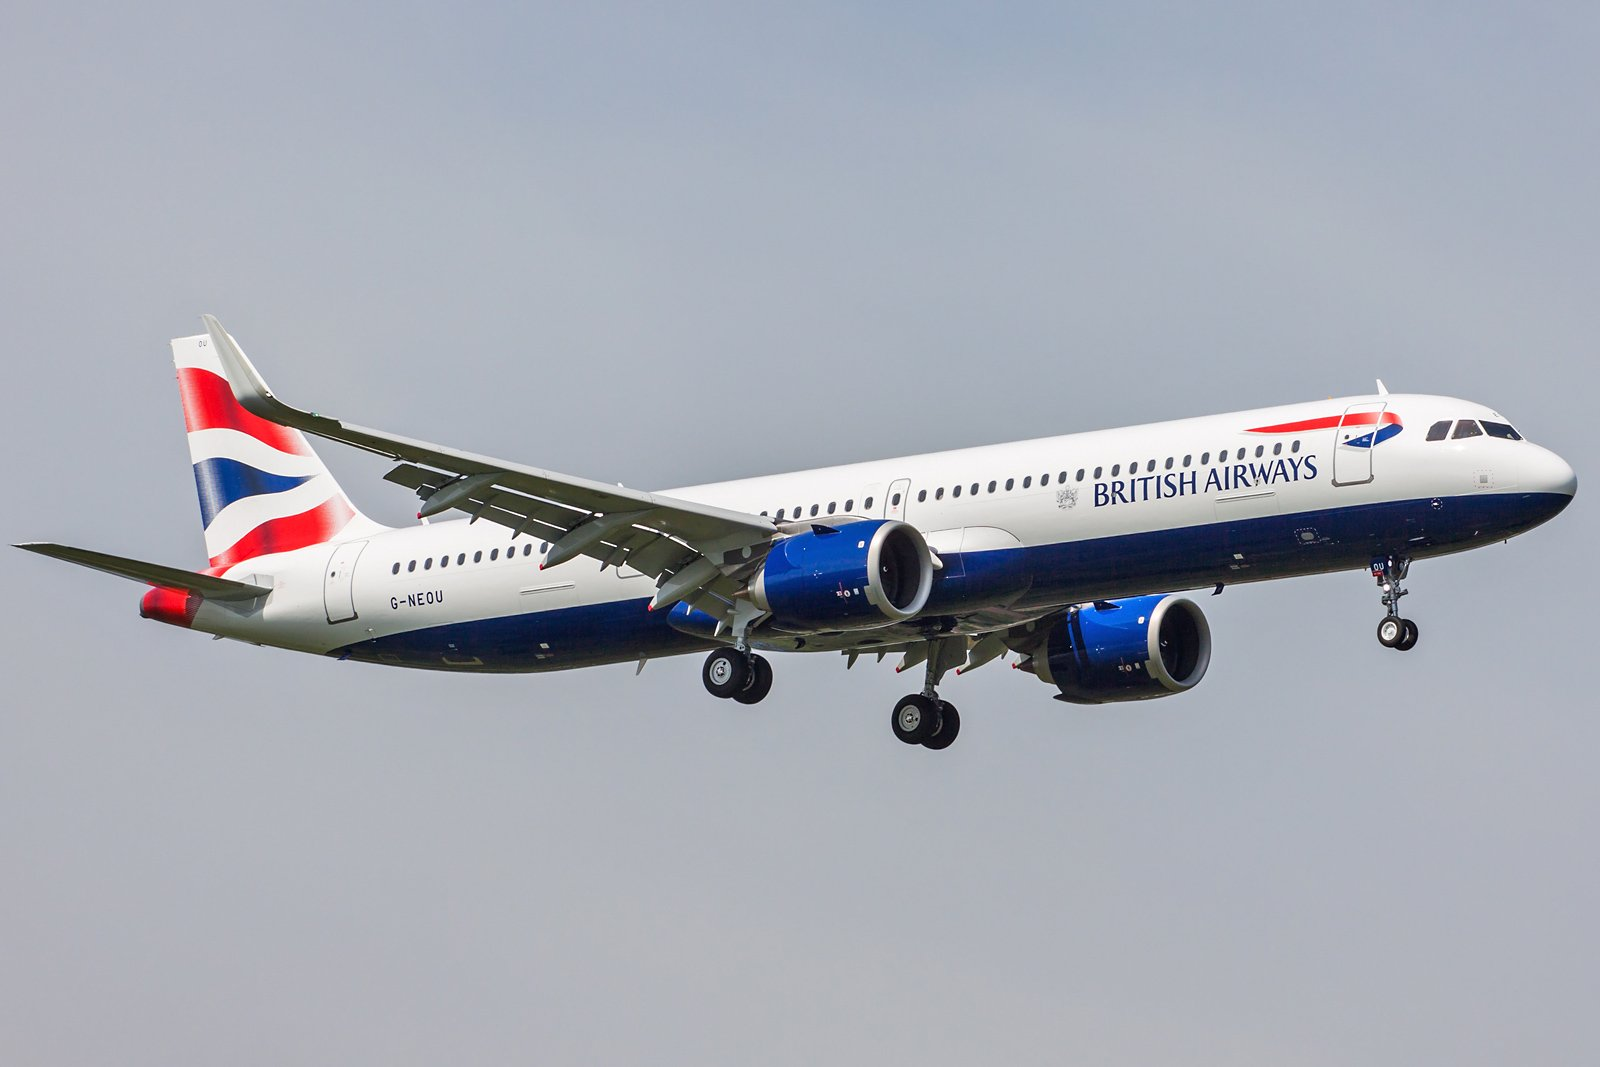 British Airways Airbus A321-251NX G-NEOU